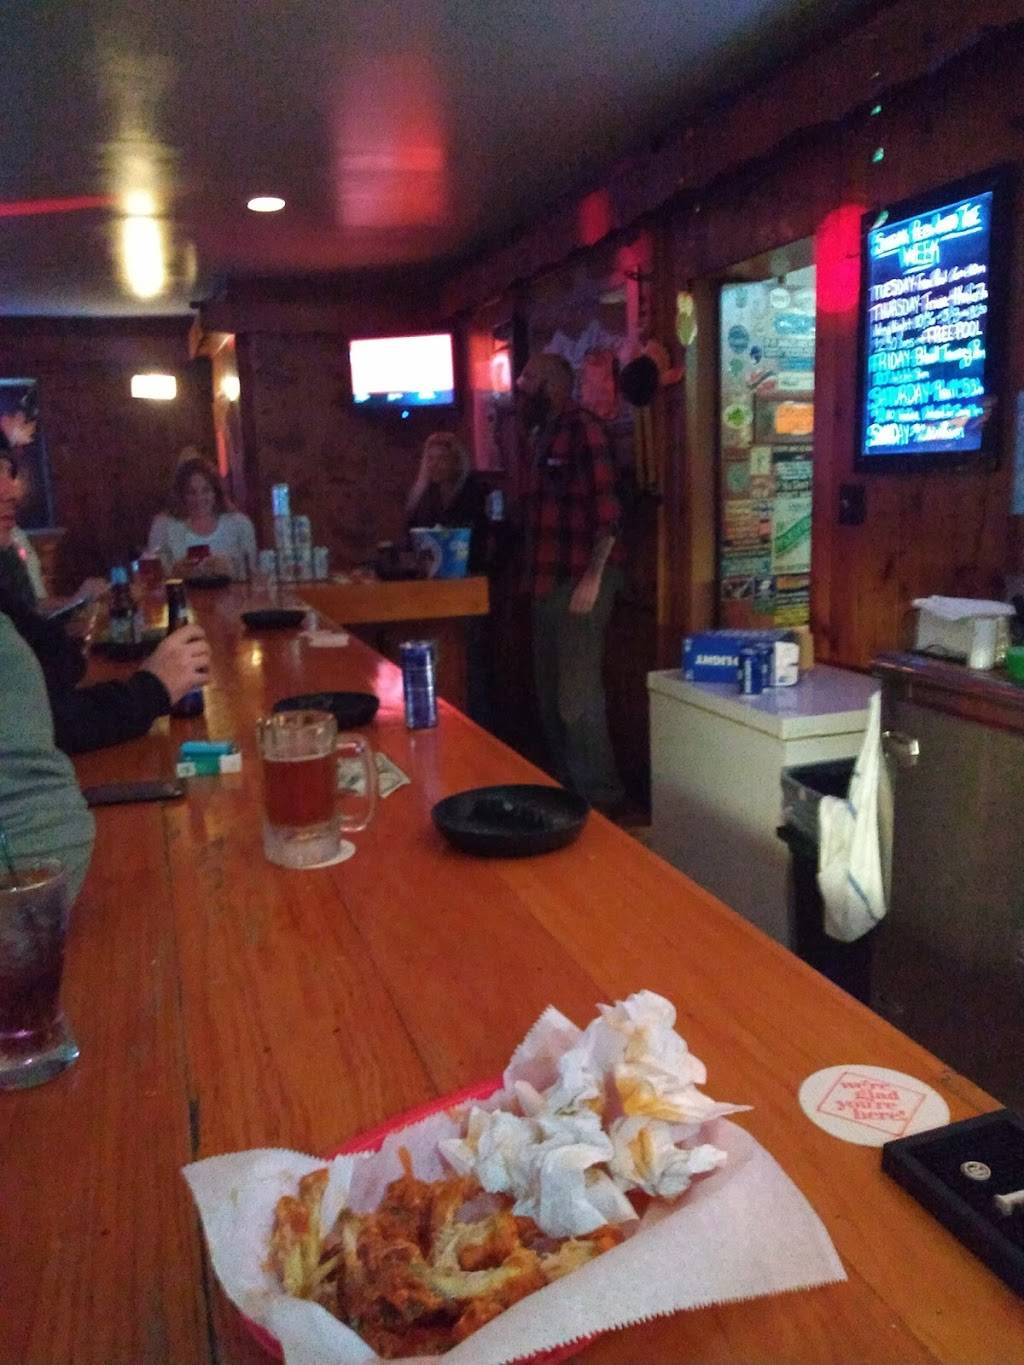 Country Lounge | restaurant | Main St, Great Bend, PA 18821, USA | 5708794414 OR +1 570-879-4414